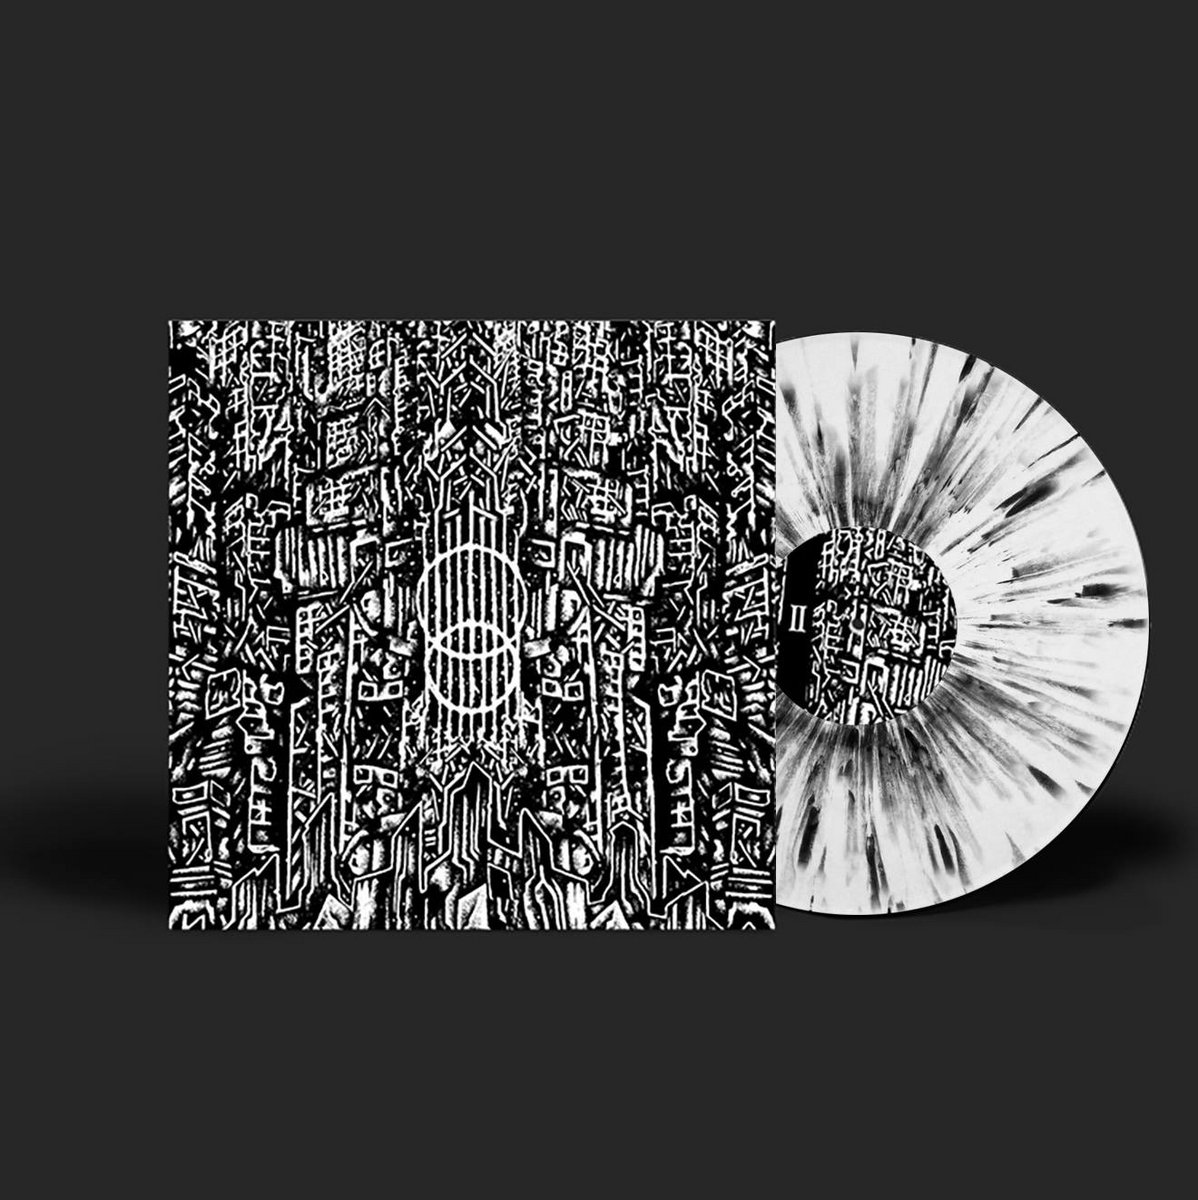 8453cbe9173 Pound s second album •• is now available on clear vinyl with black and  white splatter